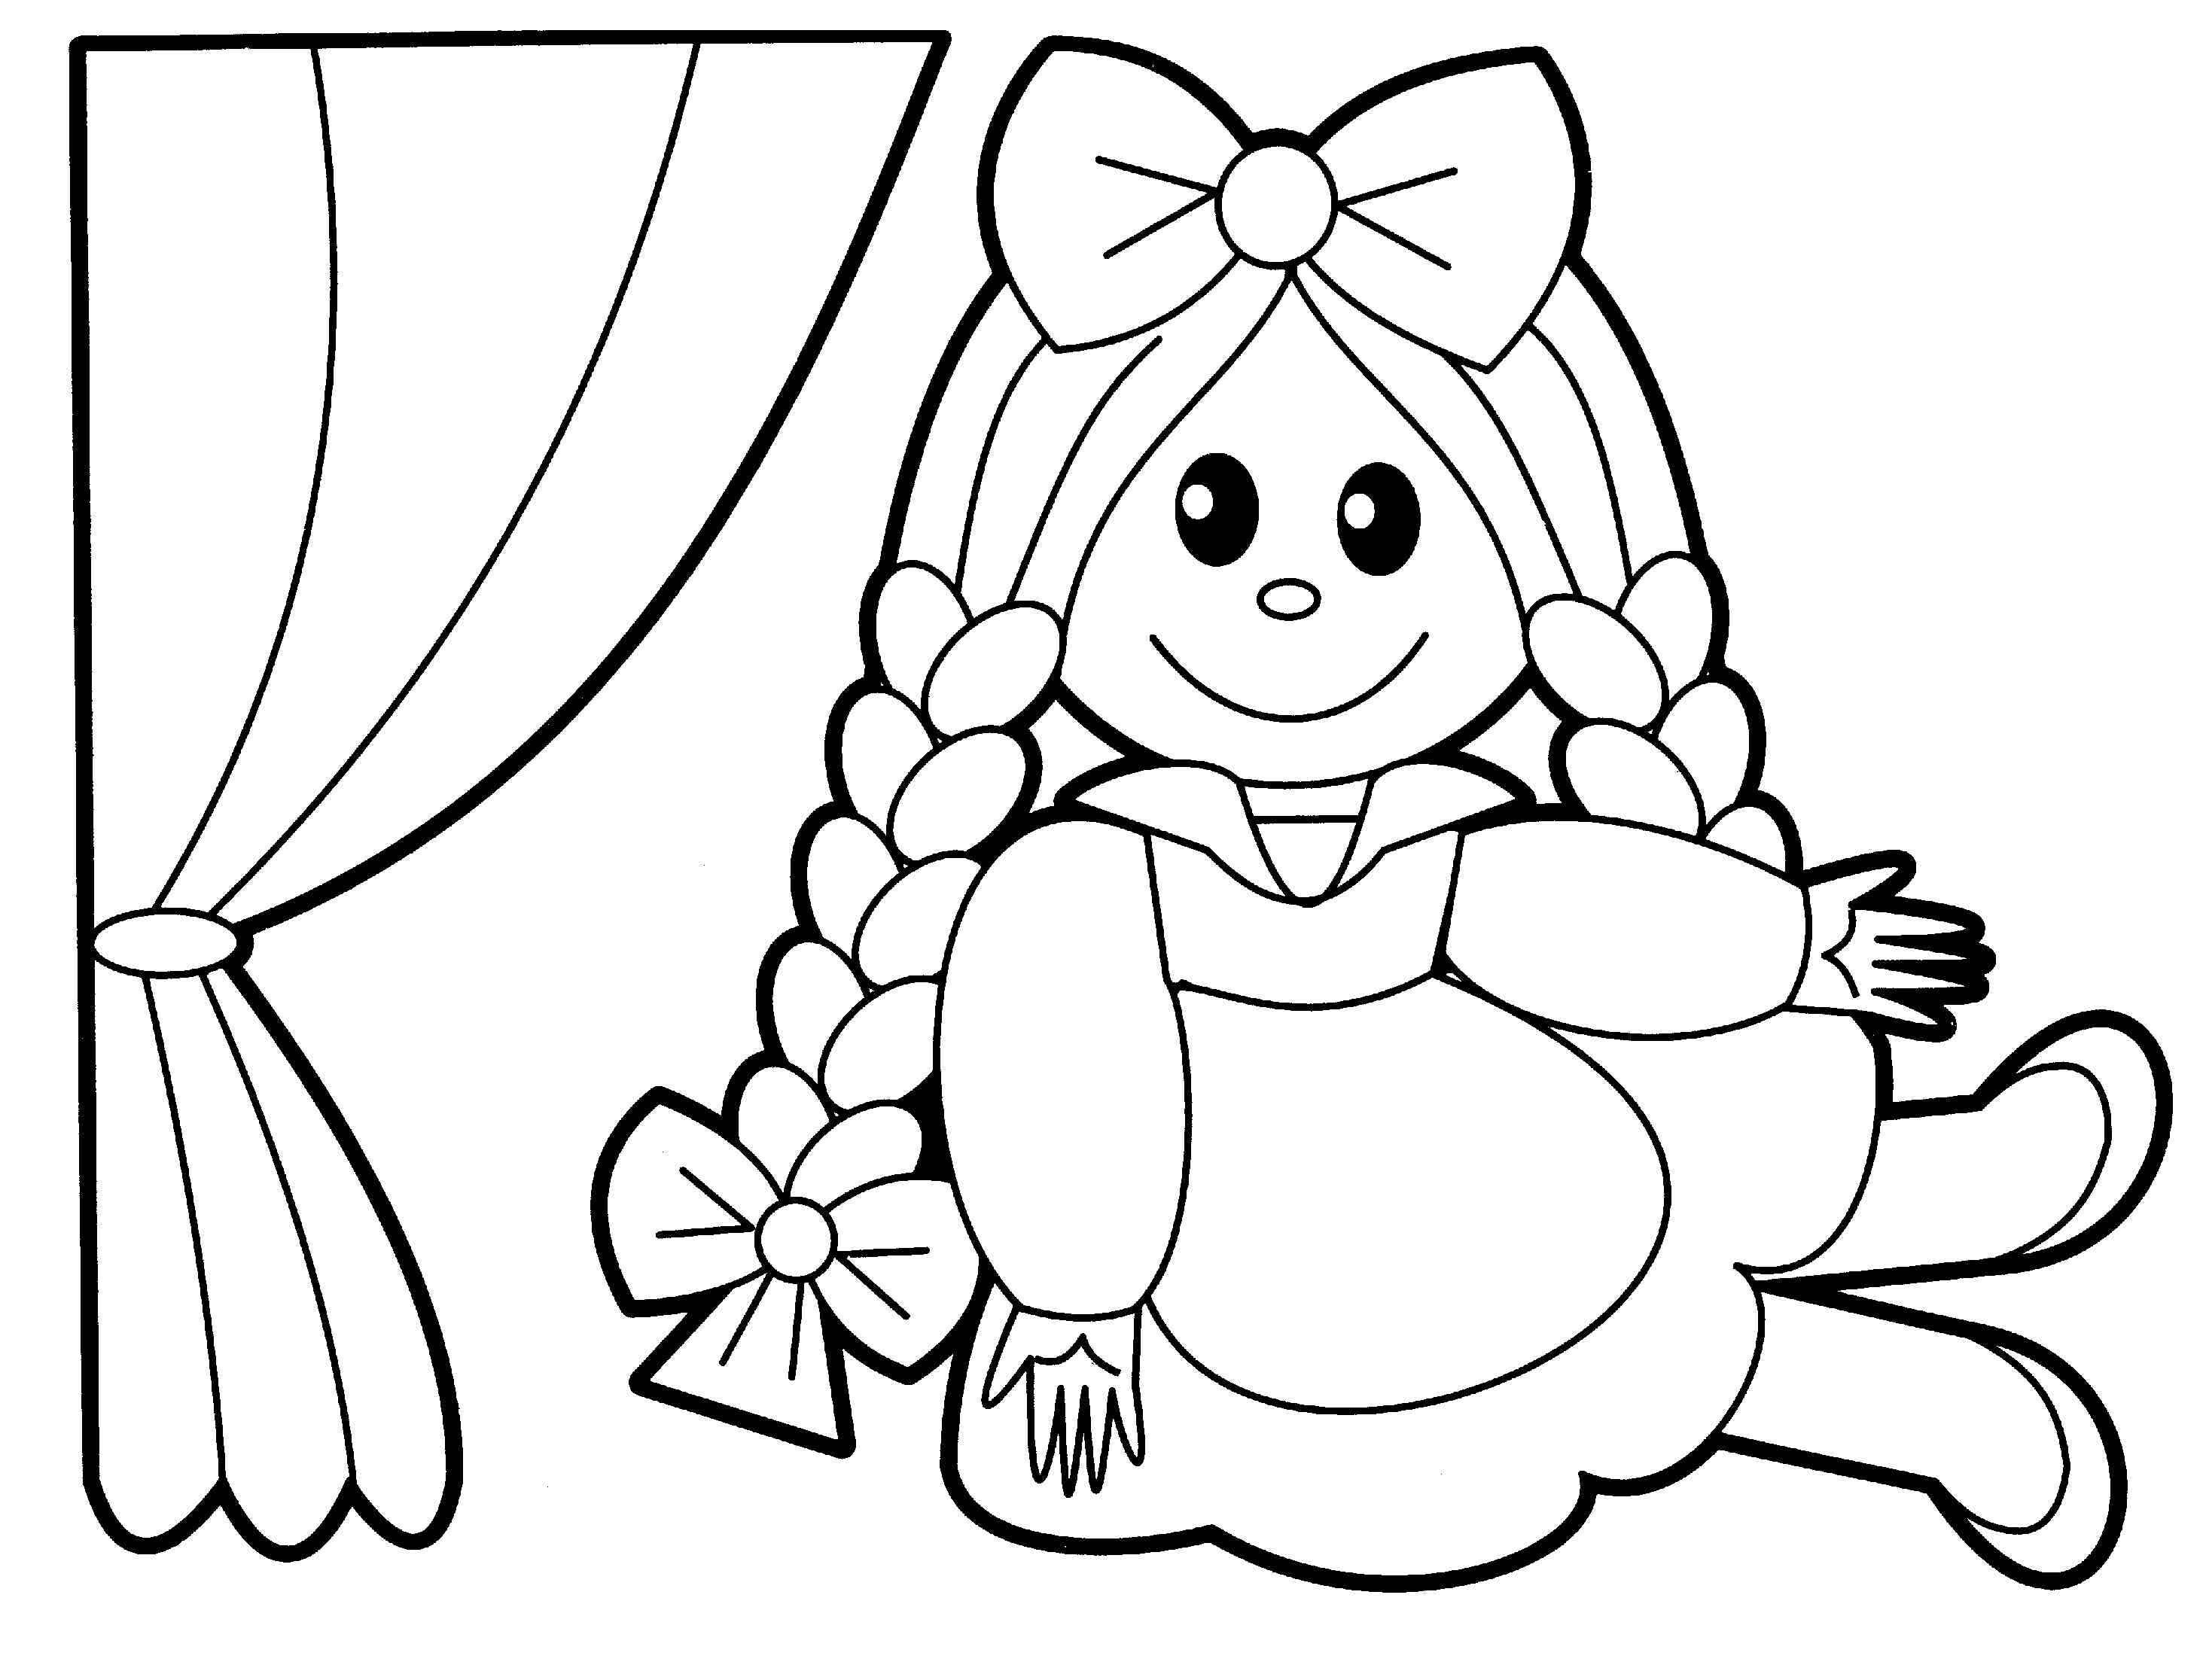 baby doll coloring page free printable baby doll coloring pages throughout inside page coloring baby doll